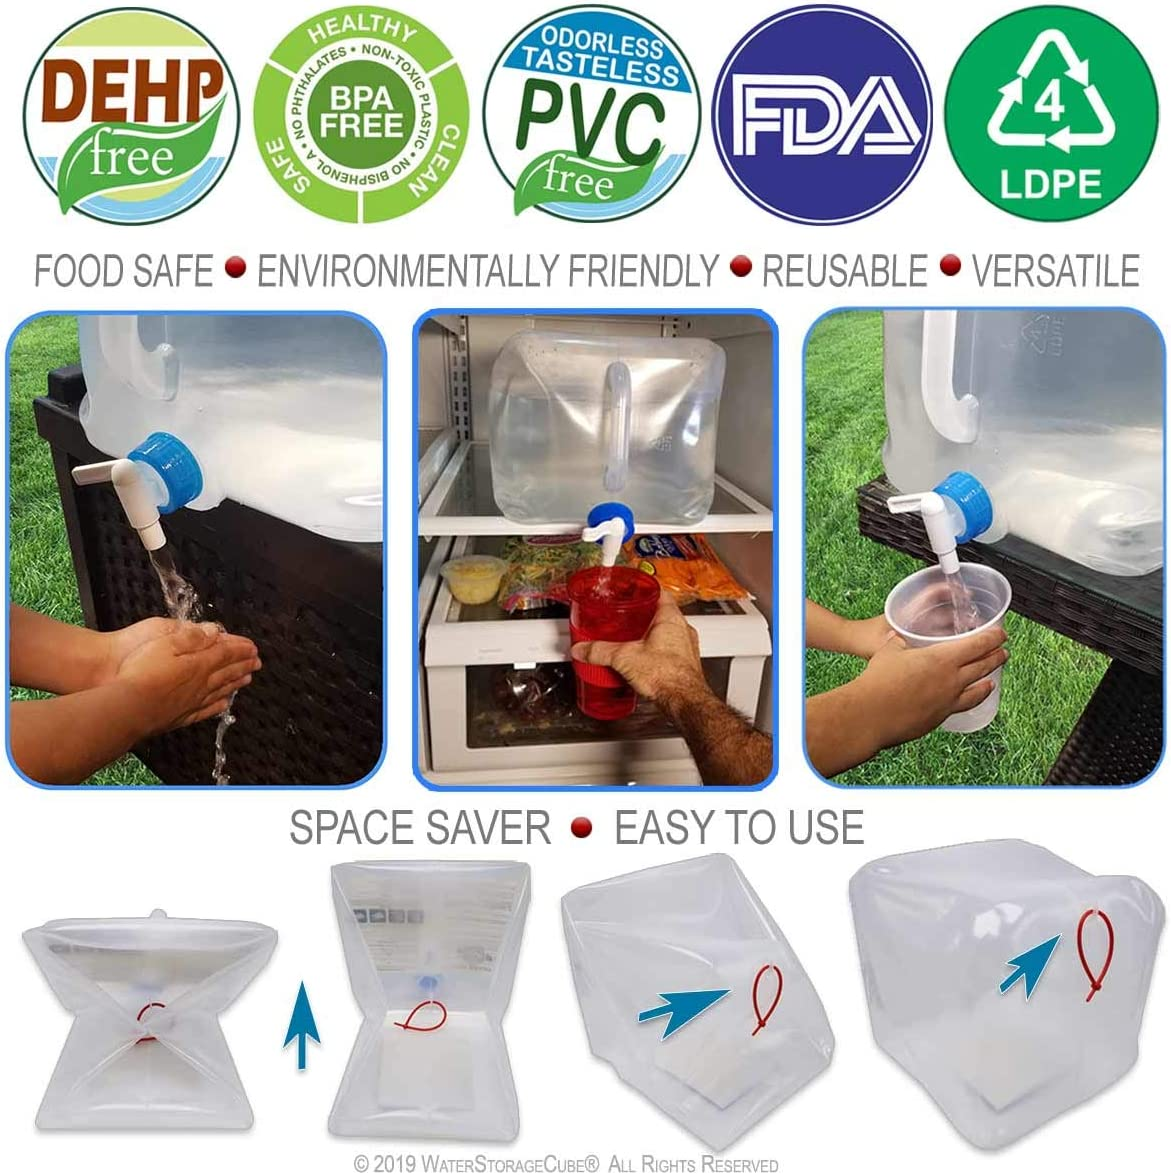 WaterStorageCube BPA Free Collapsible Water Container with Spigot Camping Water Storage Carrier Jug for Outdoors Hiking Hurricane Emergencies Foldable Portable FDA Water Canteen 1.3//2.5//5 Gallon